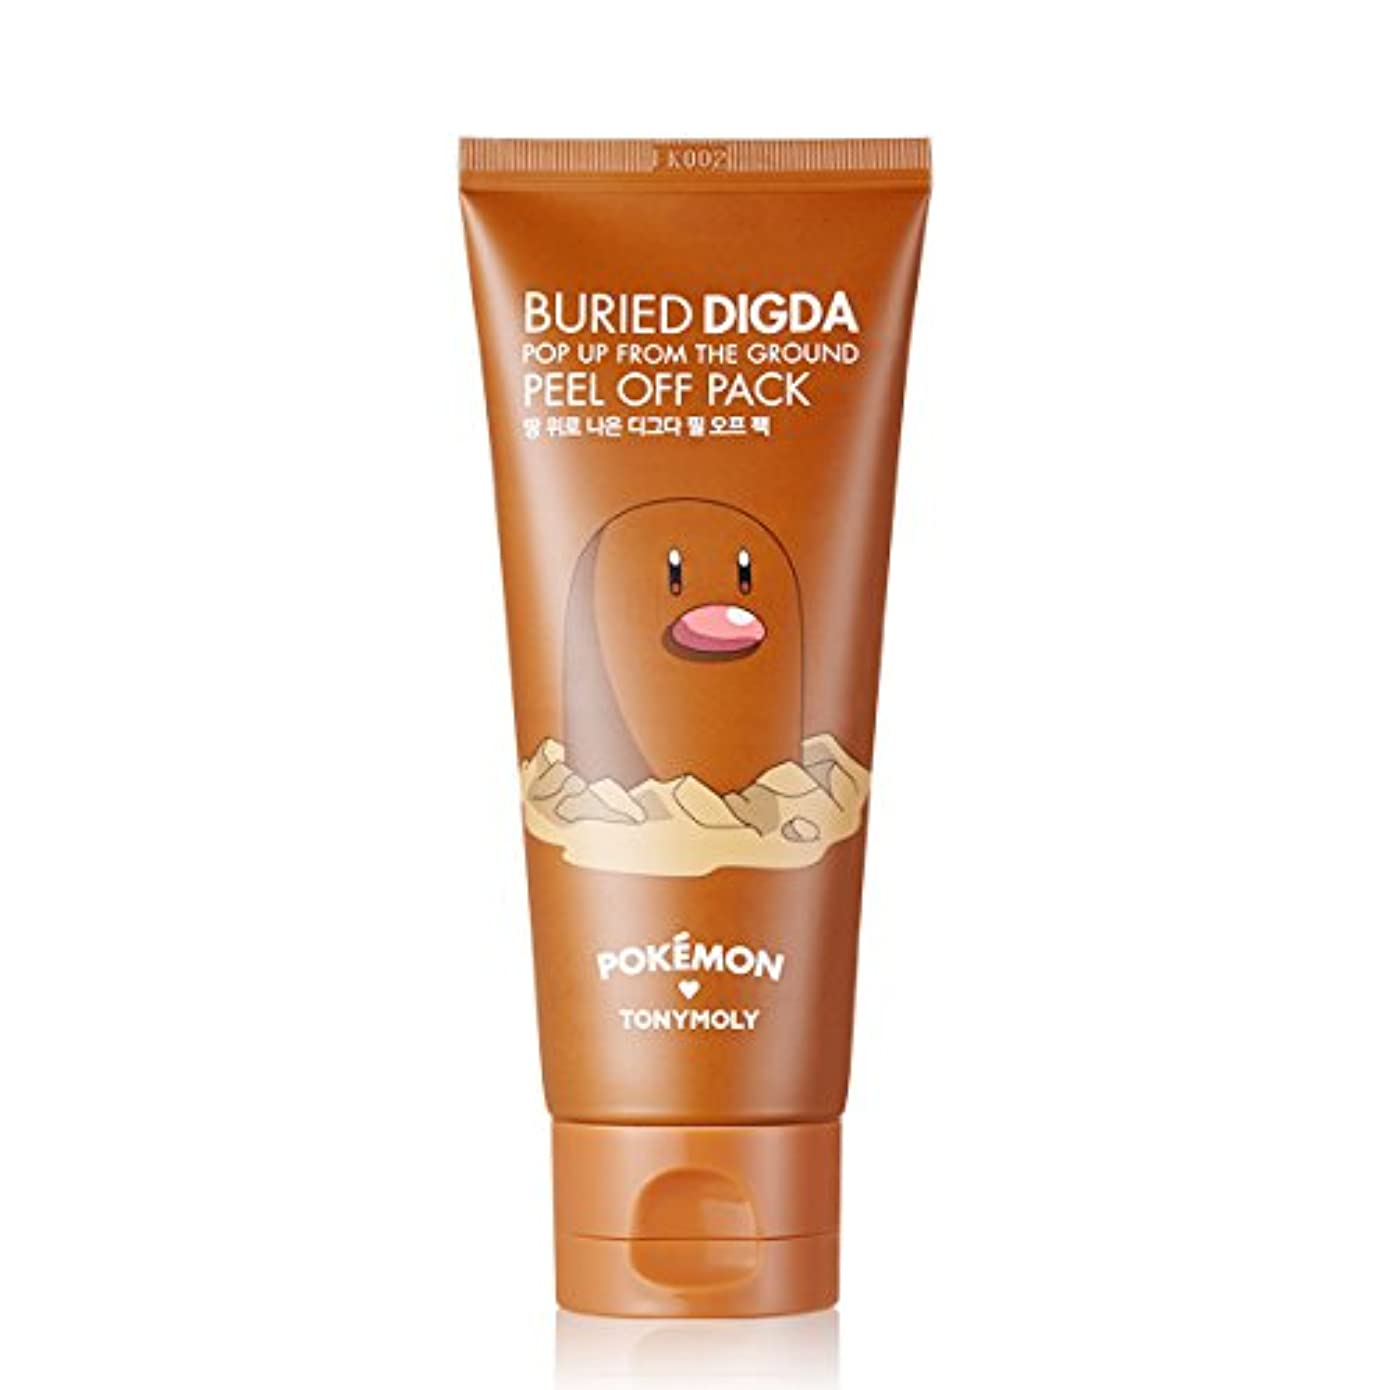 TONY MOLY BURIED DIGDA (Diglett) POP UP FROM THE GROUND PEEL OFF PACK Pokemon Edition トニーモリー?ブレイド?ディグダ?ピンク?アップ?アース?ピール?オフ?パック...